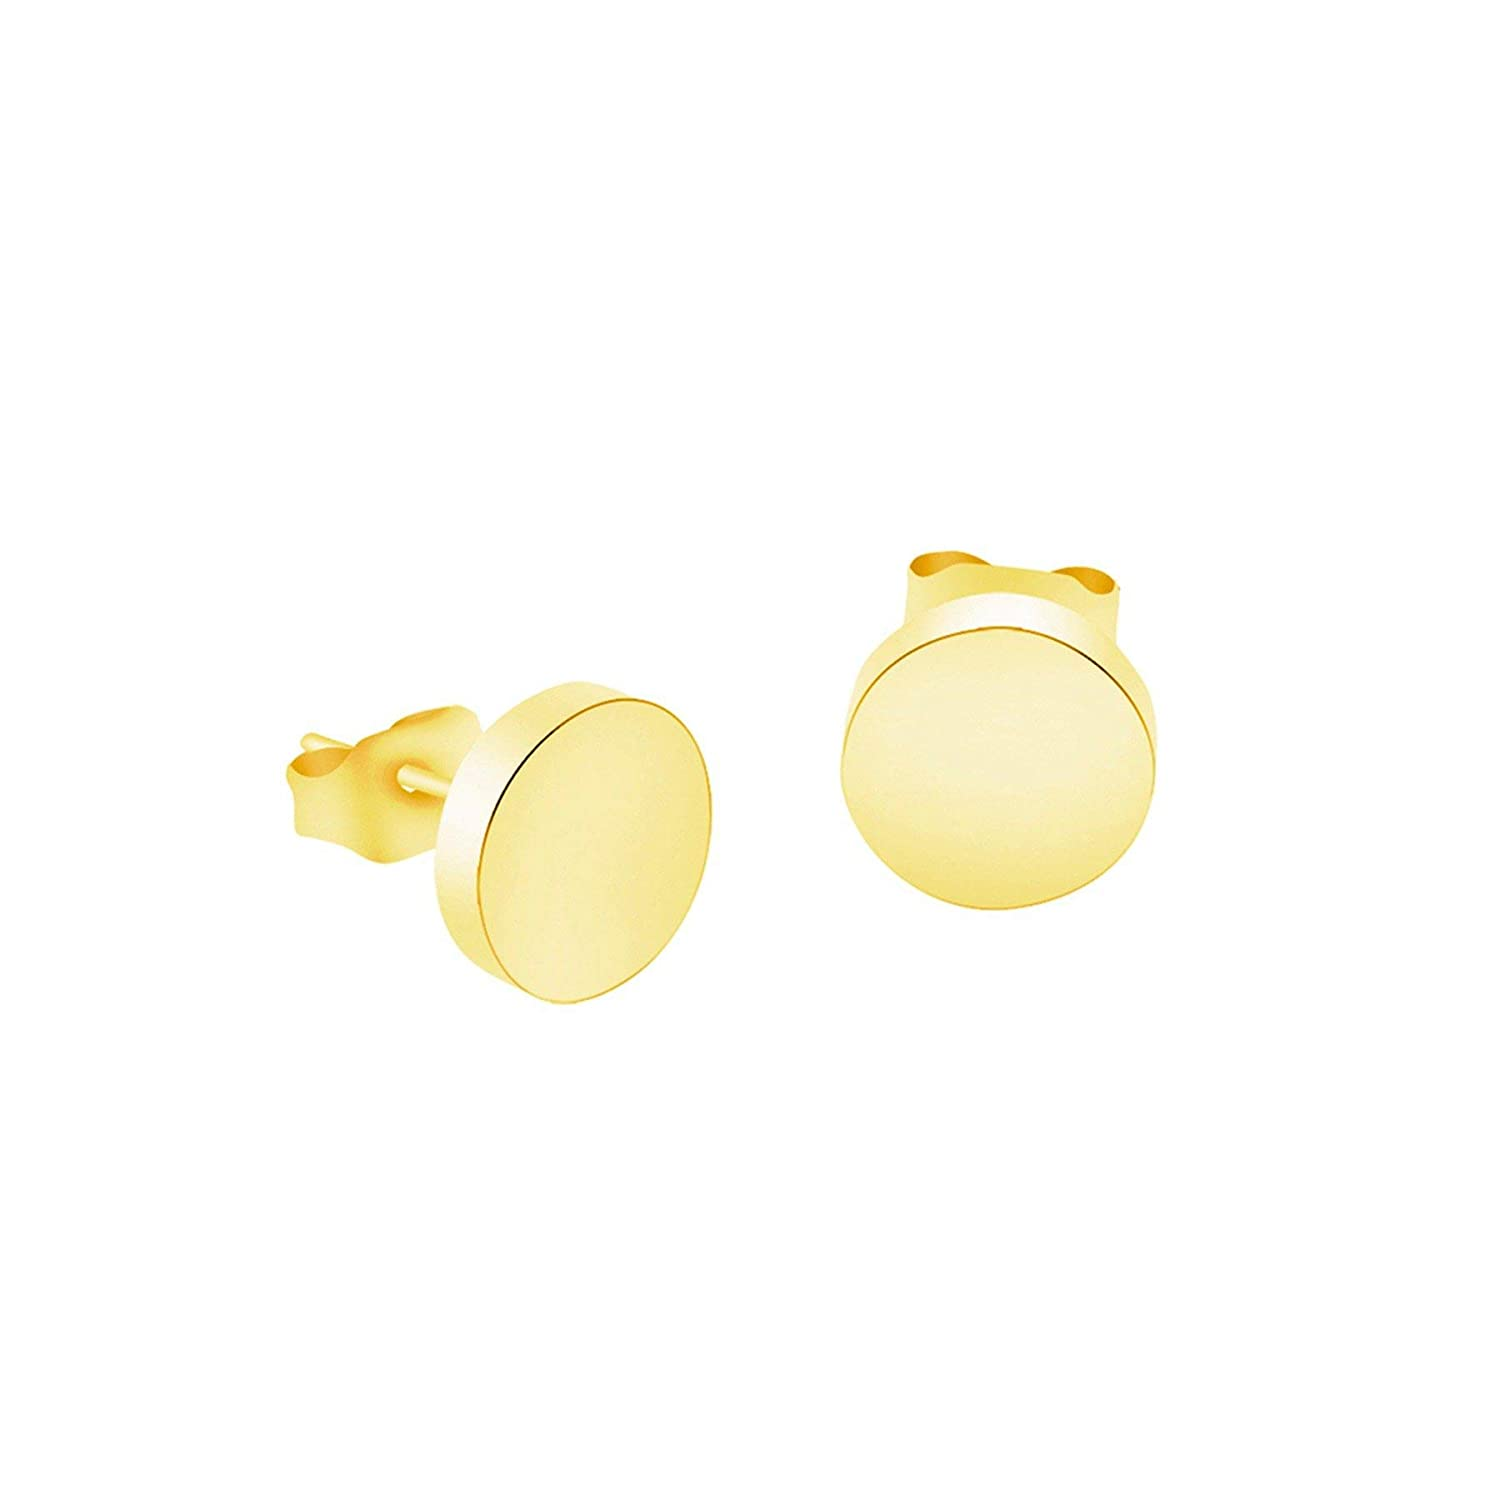 Gold Silver Color Round Circle Stud Earrings For Women Girls Stainless Steel Disc Geometric Earring Birthday Jewelry Gift,Gold Color